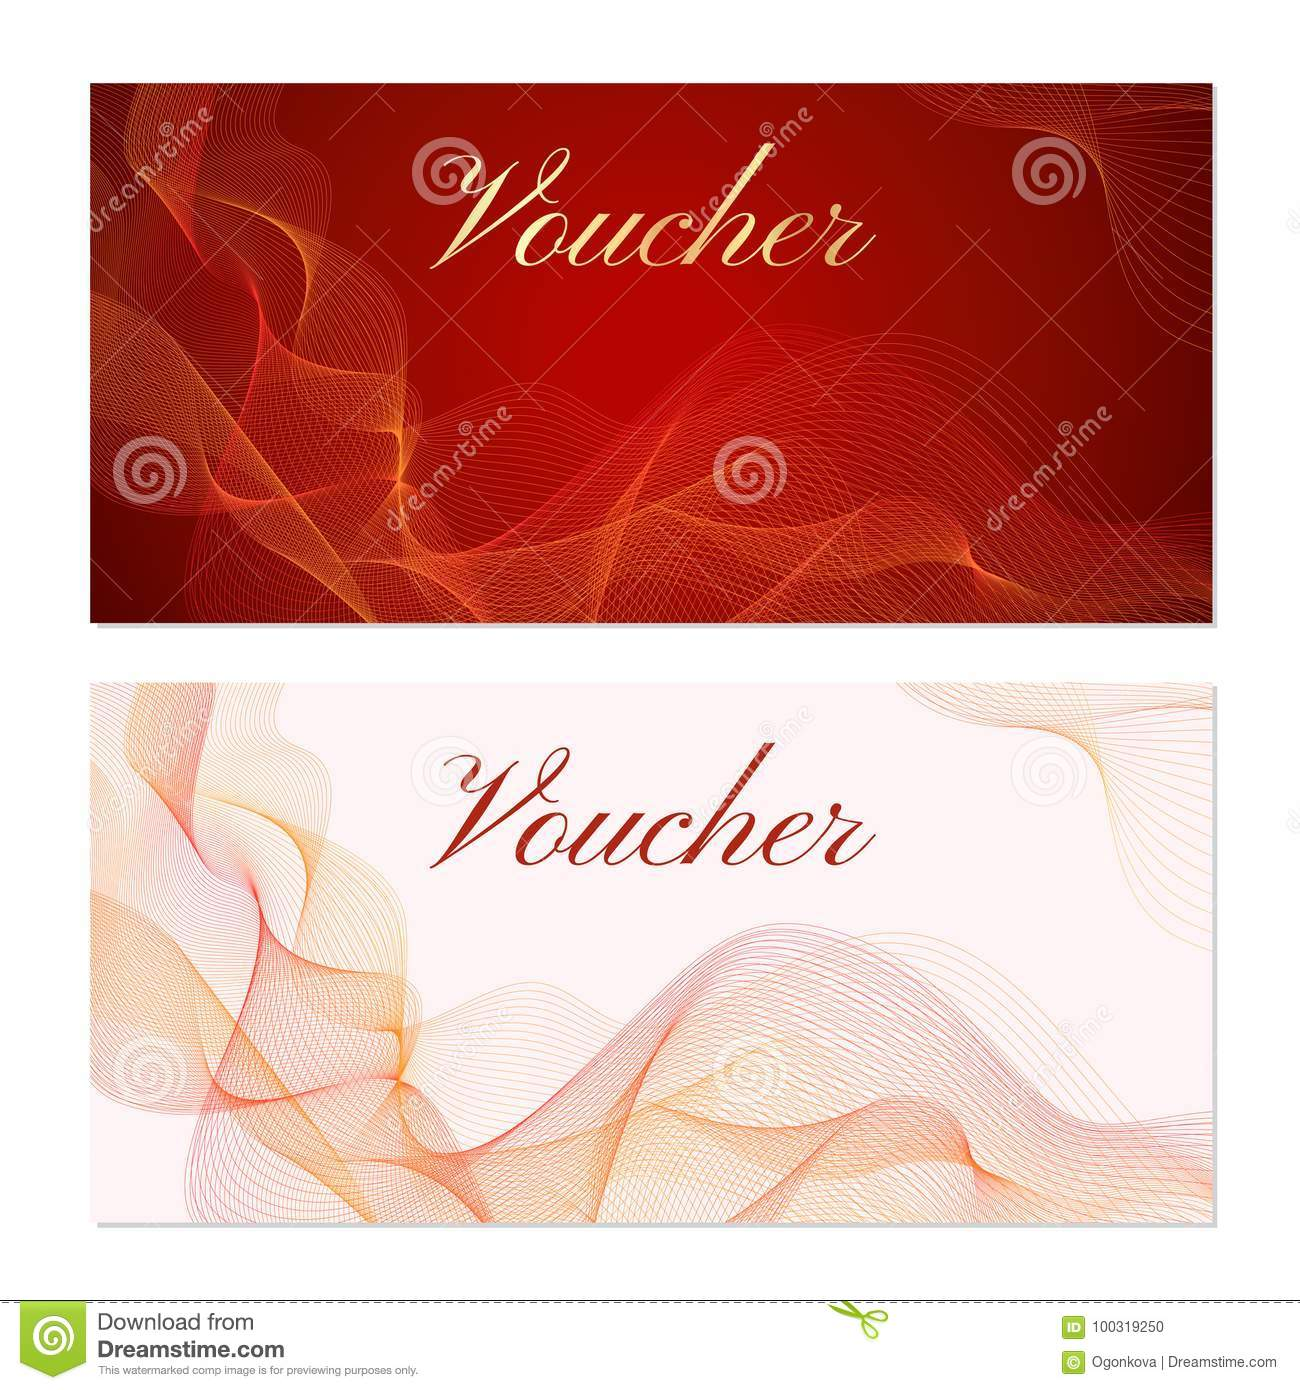 Voucher, Gift Certificate, Coupon Template  Guilloche Pattern